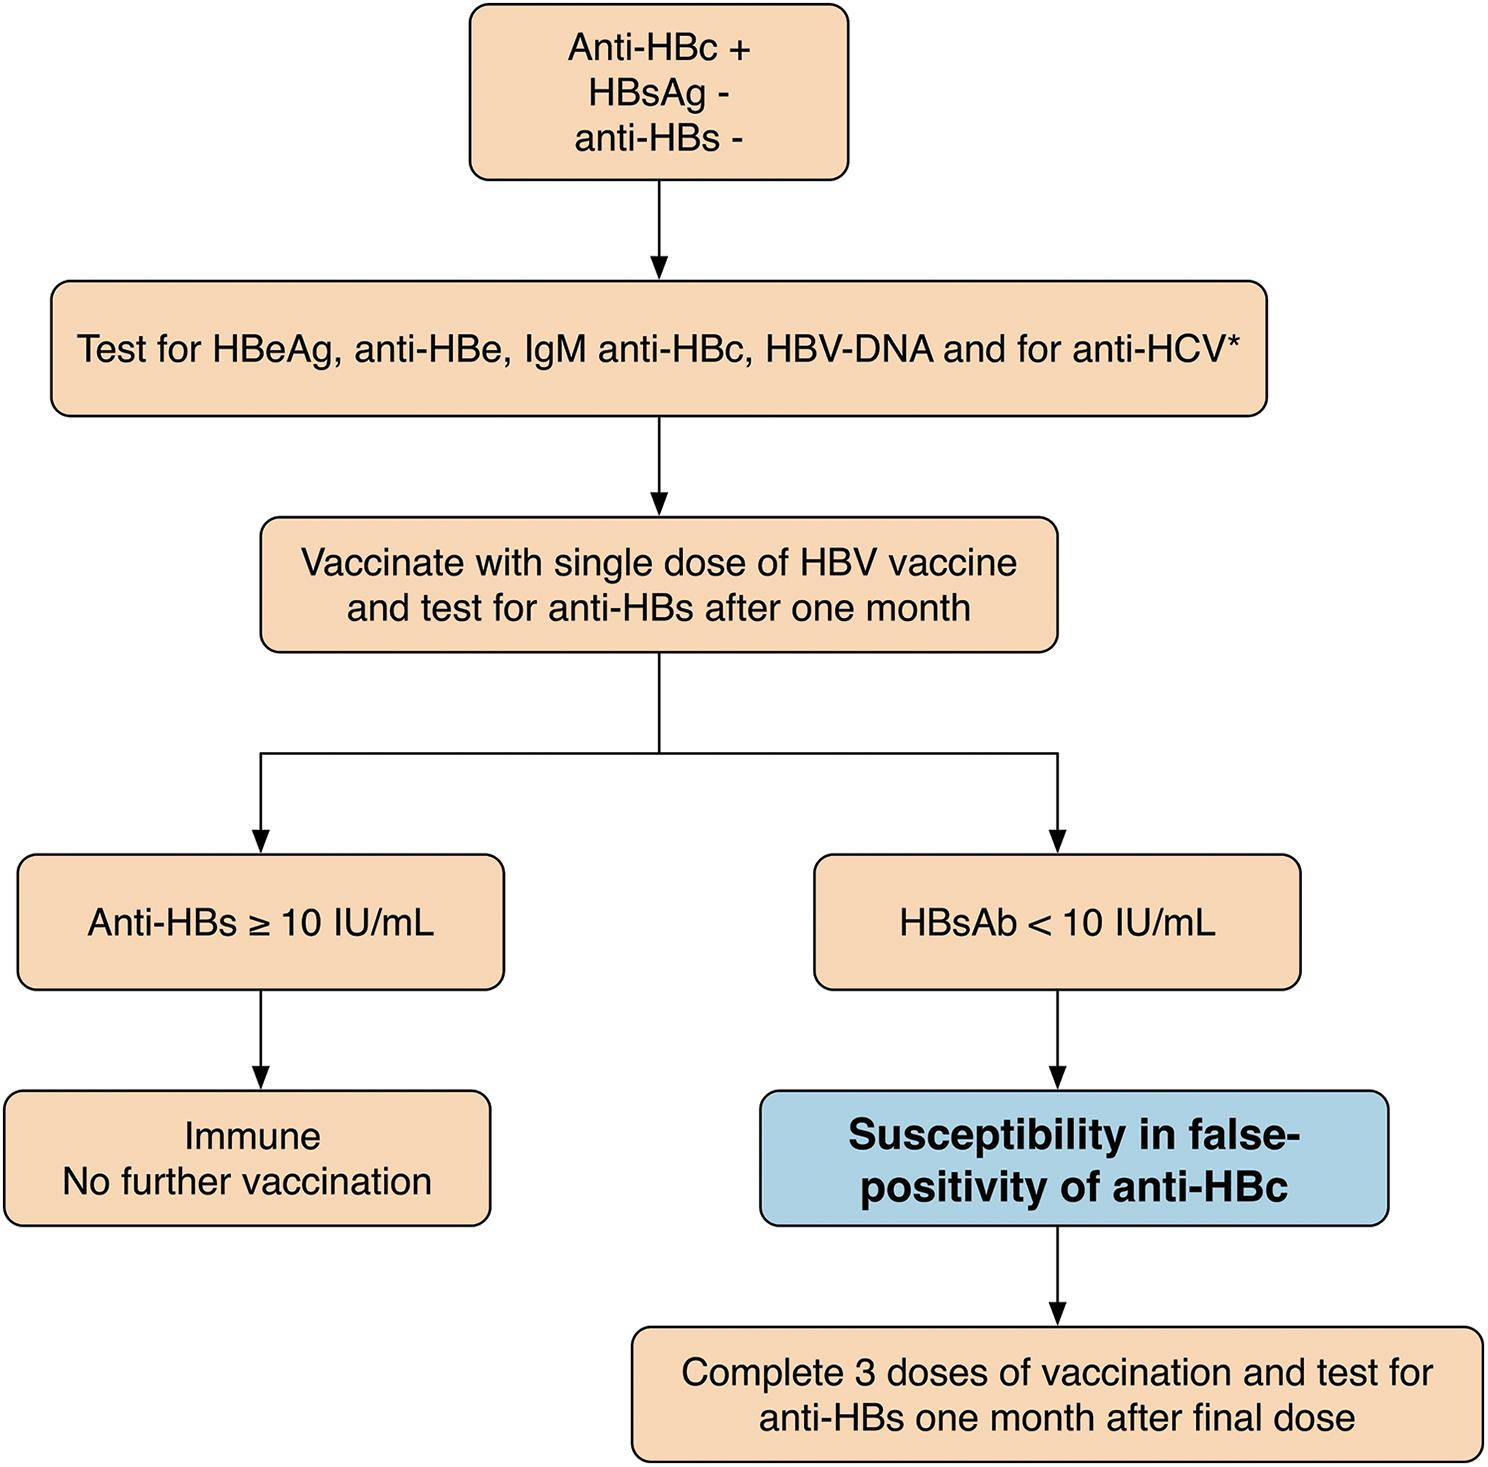 Response to vaccination in anti-HBc positive subjects.